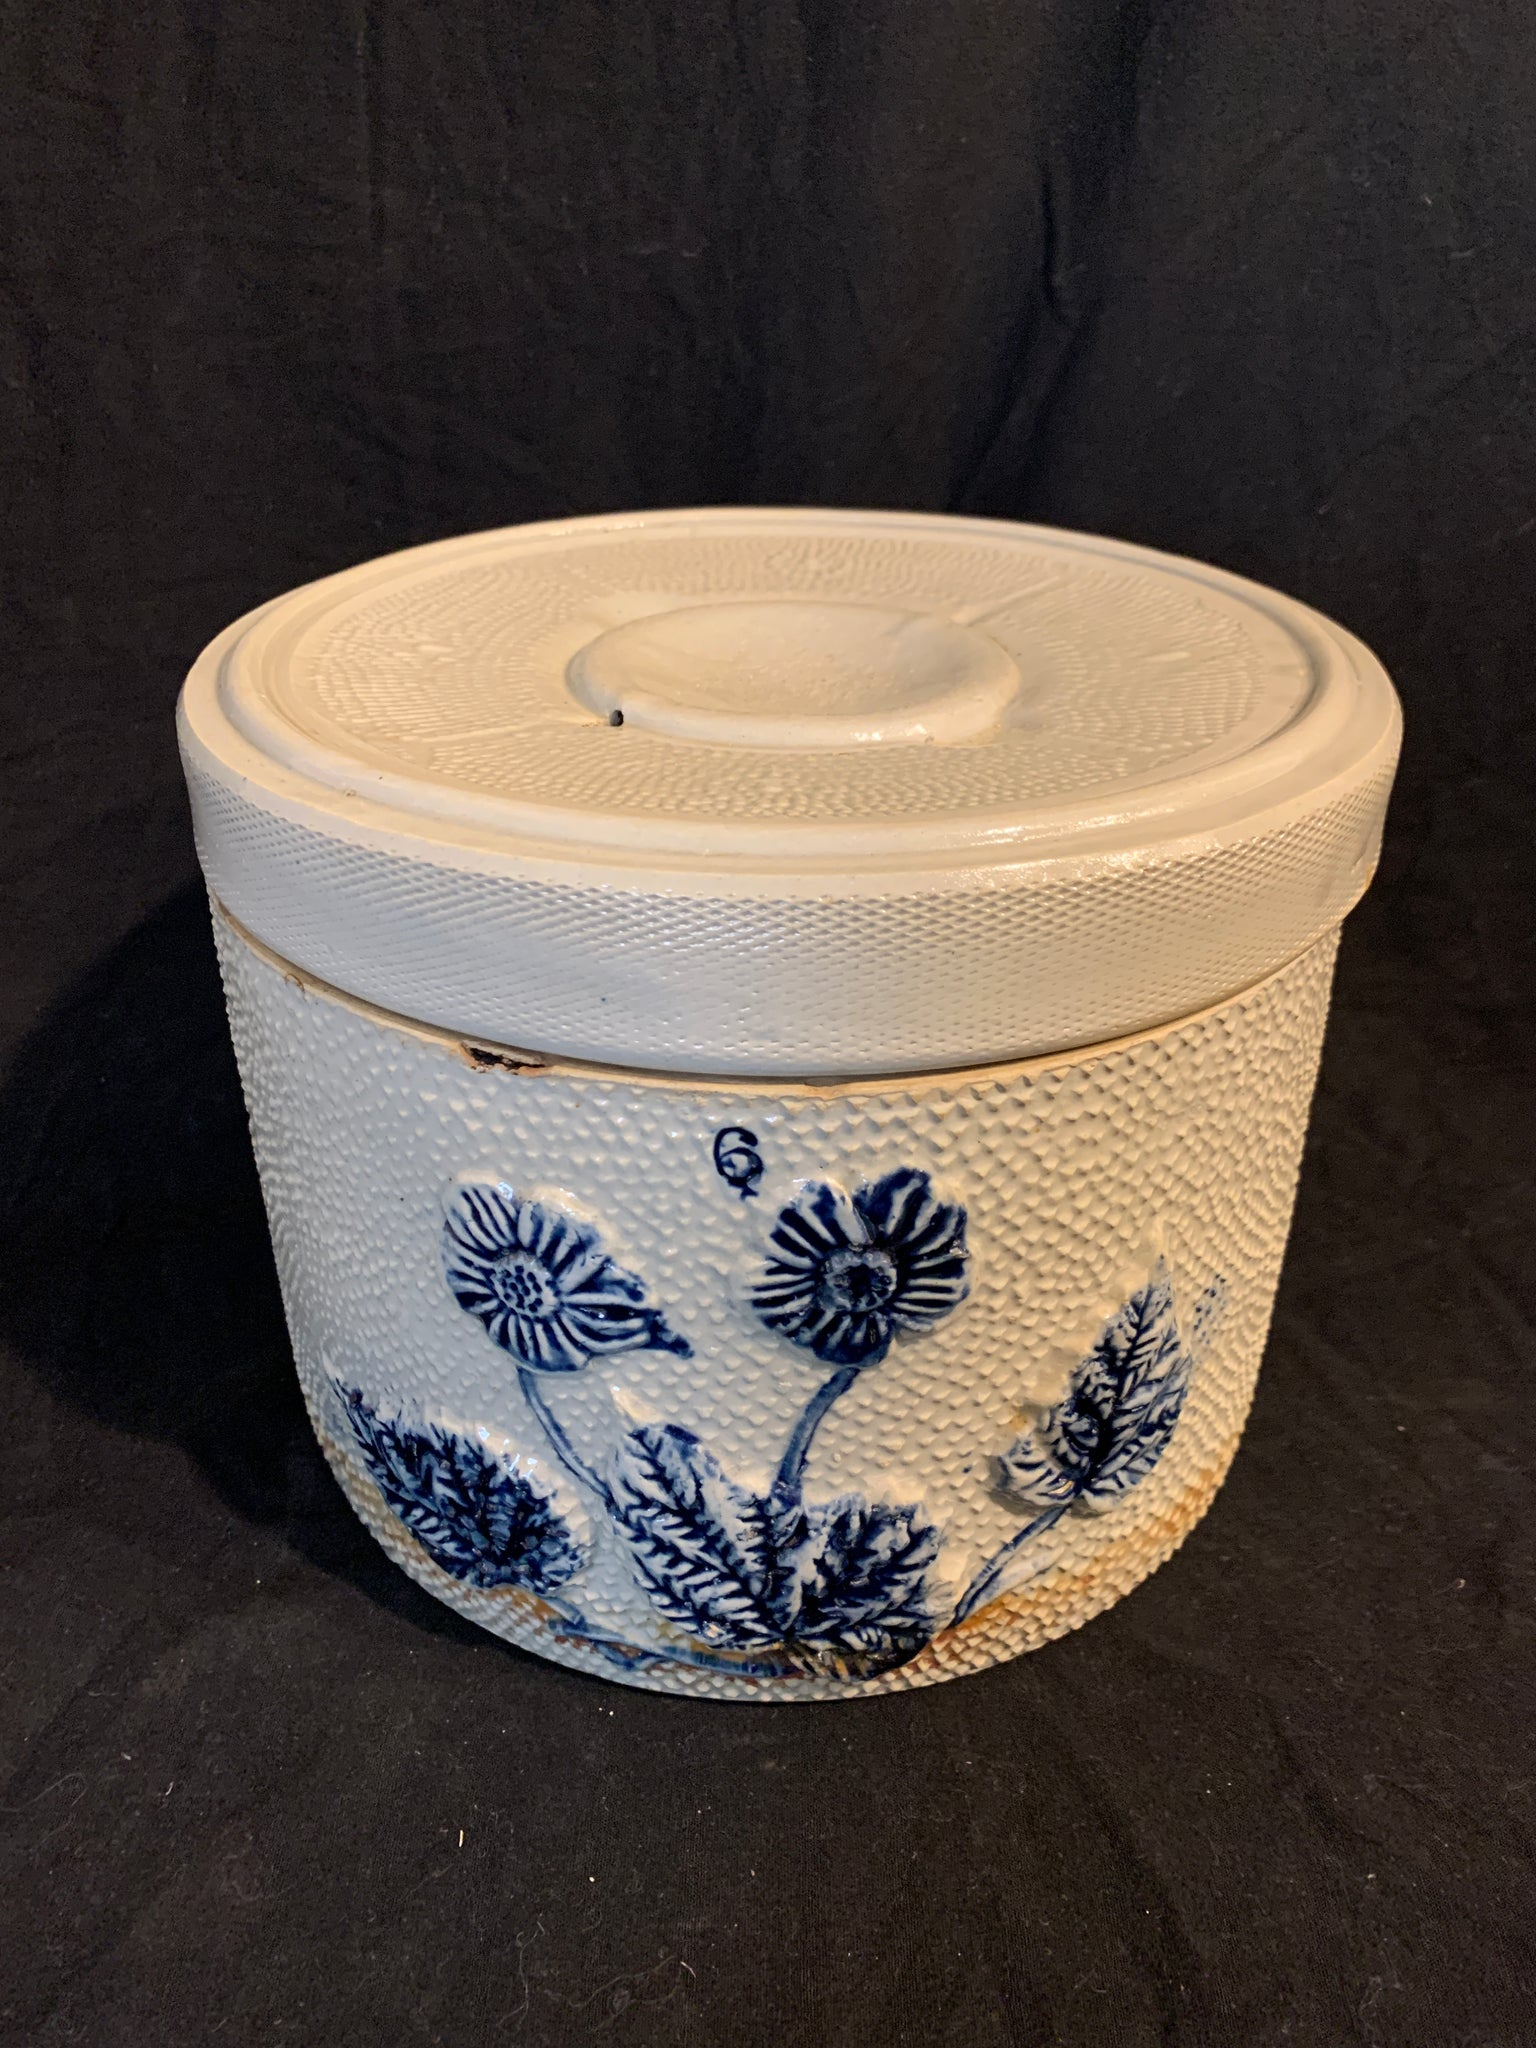 Circa 1870 Country American stoneware covered butter crock with raised floral and leaf design on a stipple texture ground